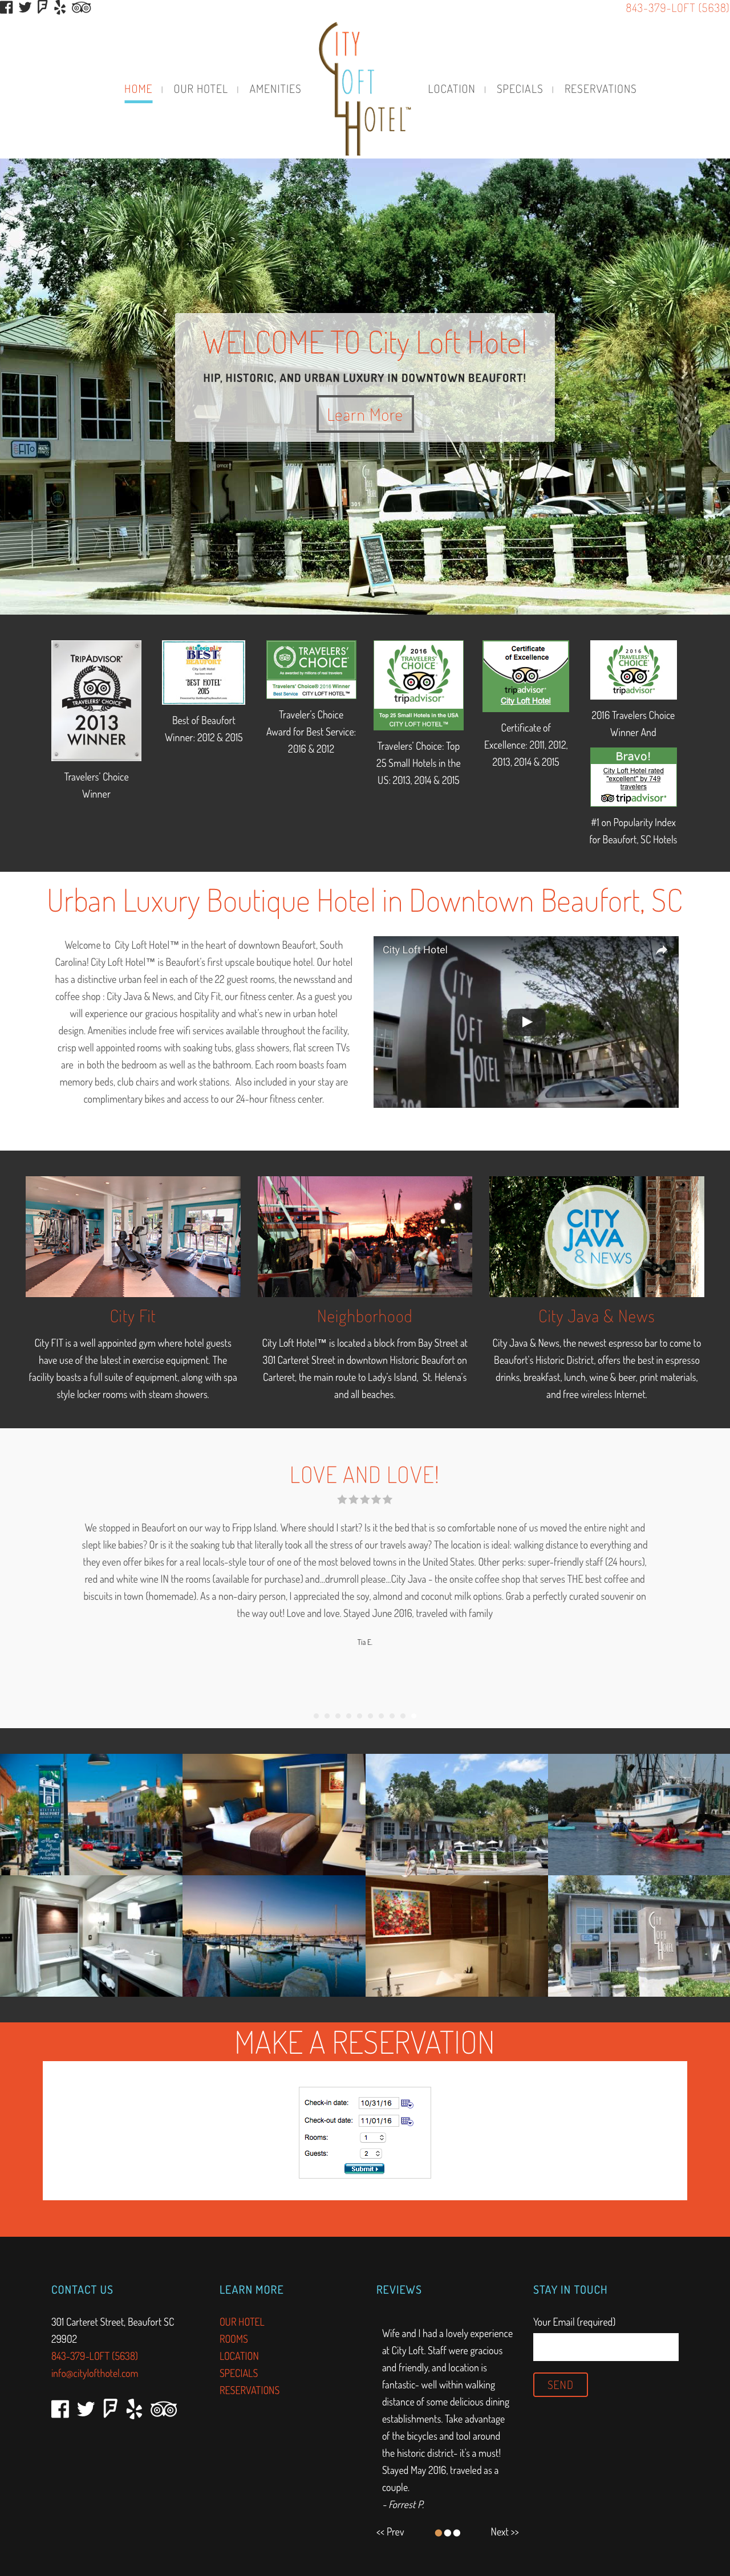 CITY LOFT HOTEL in the Historic District - Beaufort, SC | PickleJuice Productions